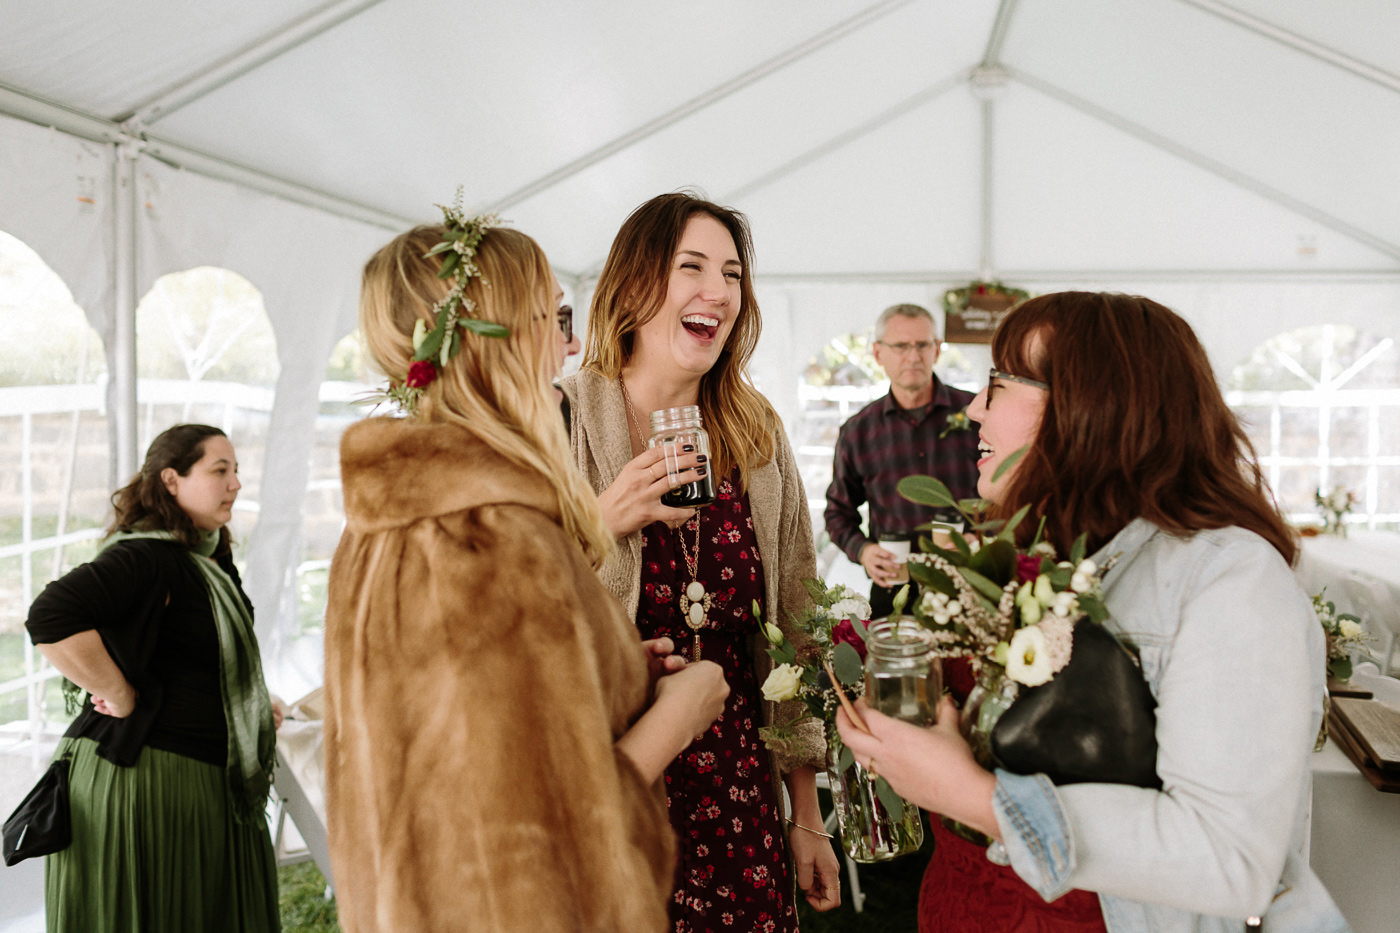 Reception guests laughing with bride